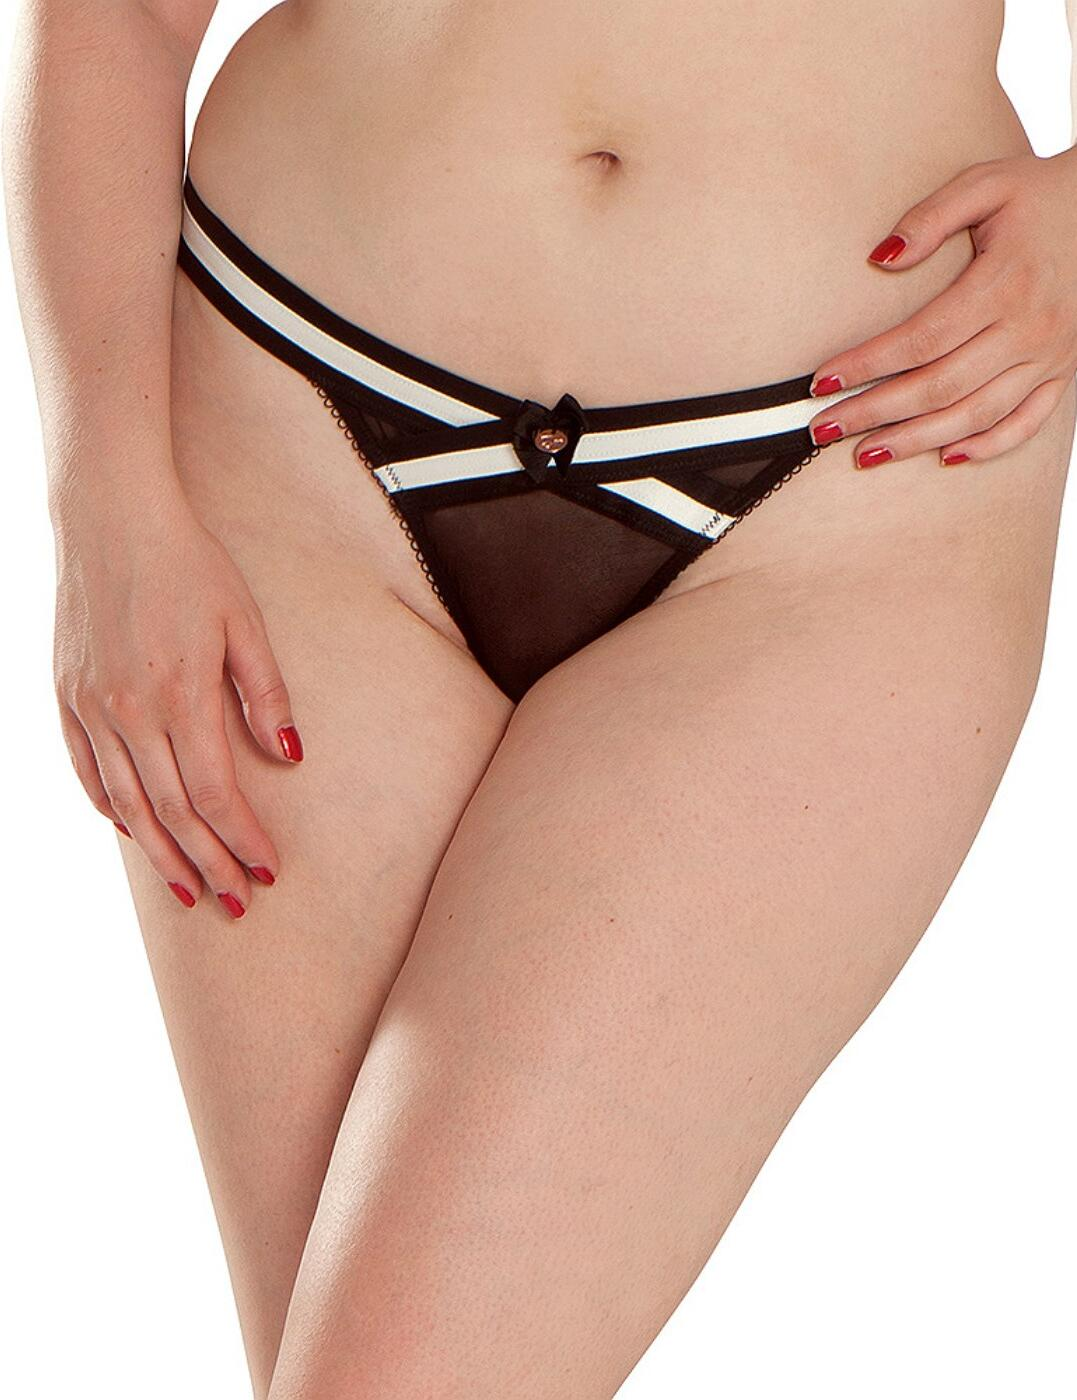 ST4302 Scantilly by Curvy Kate Decadence Thong - ST4302 Monochrome